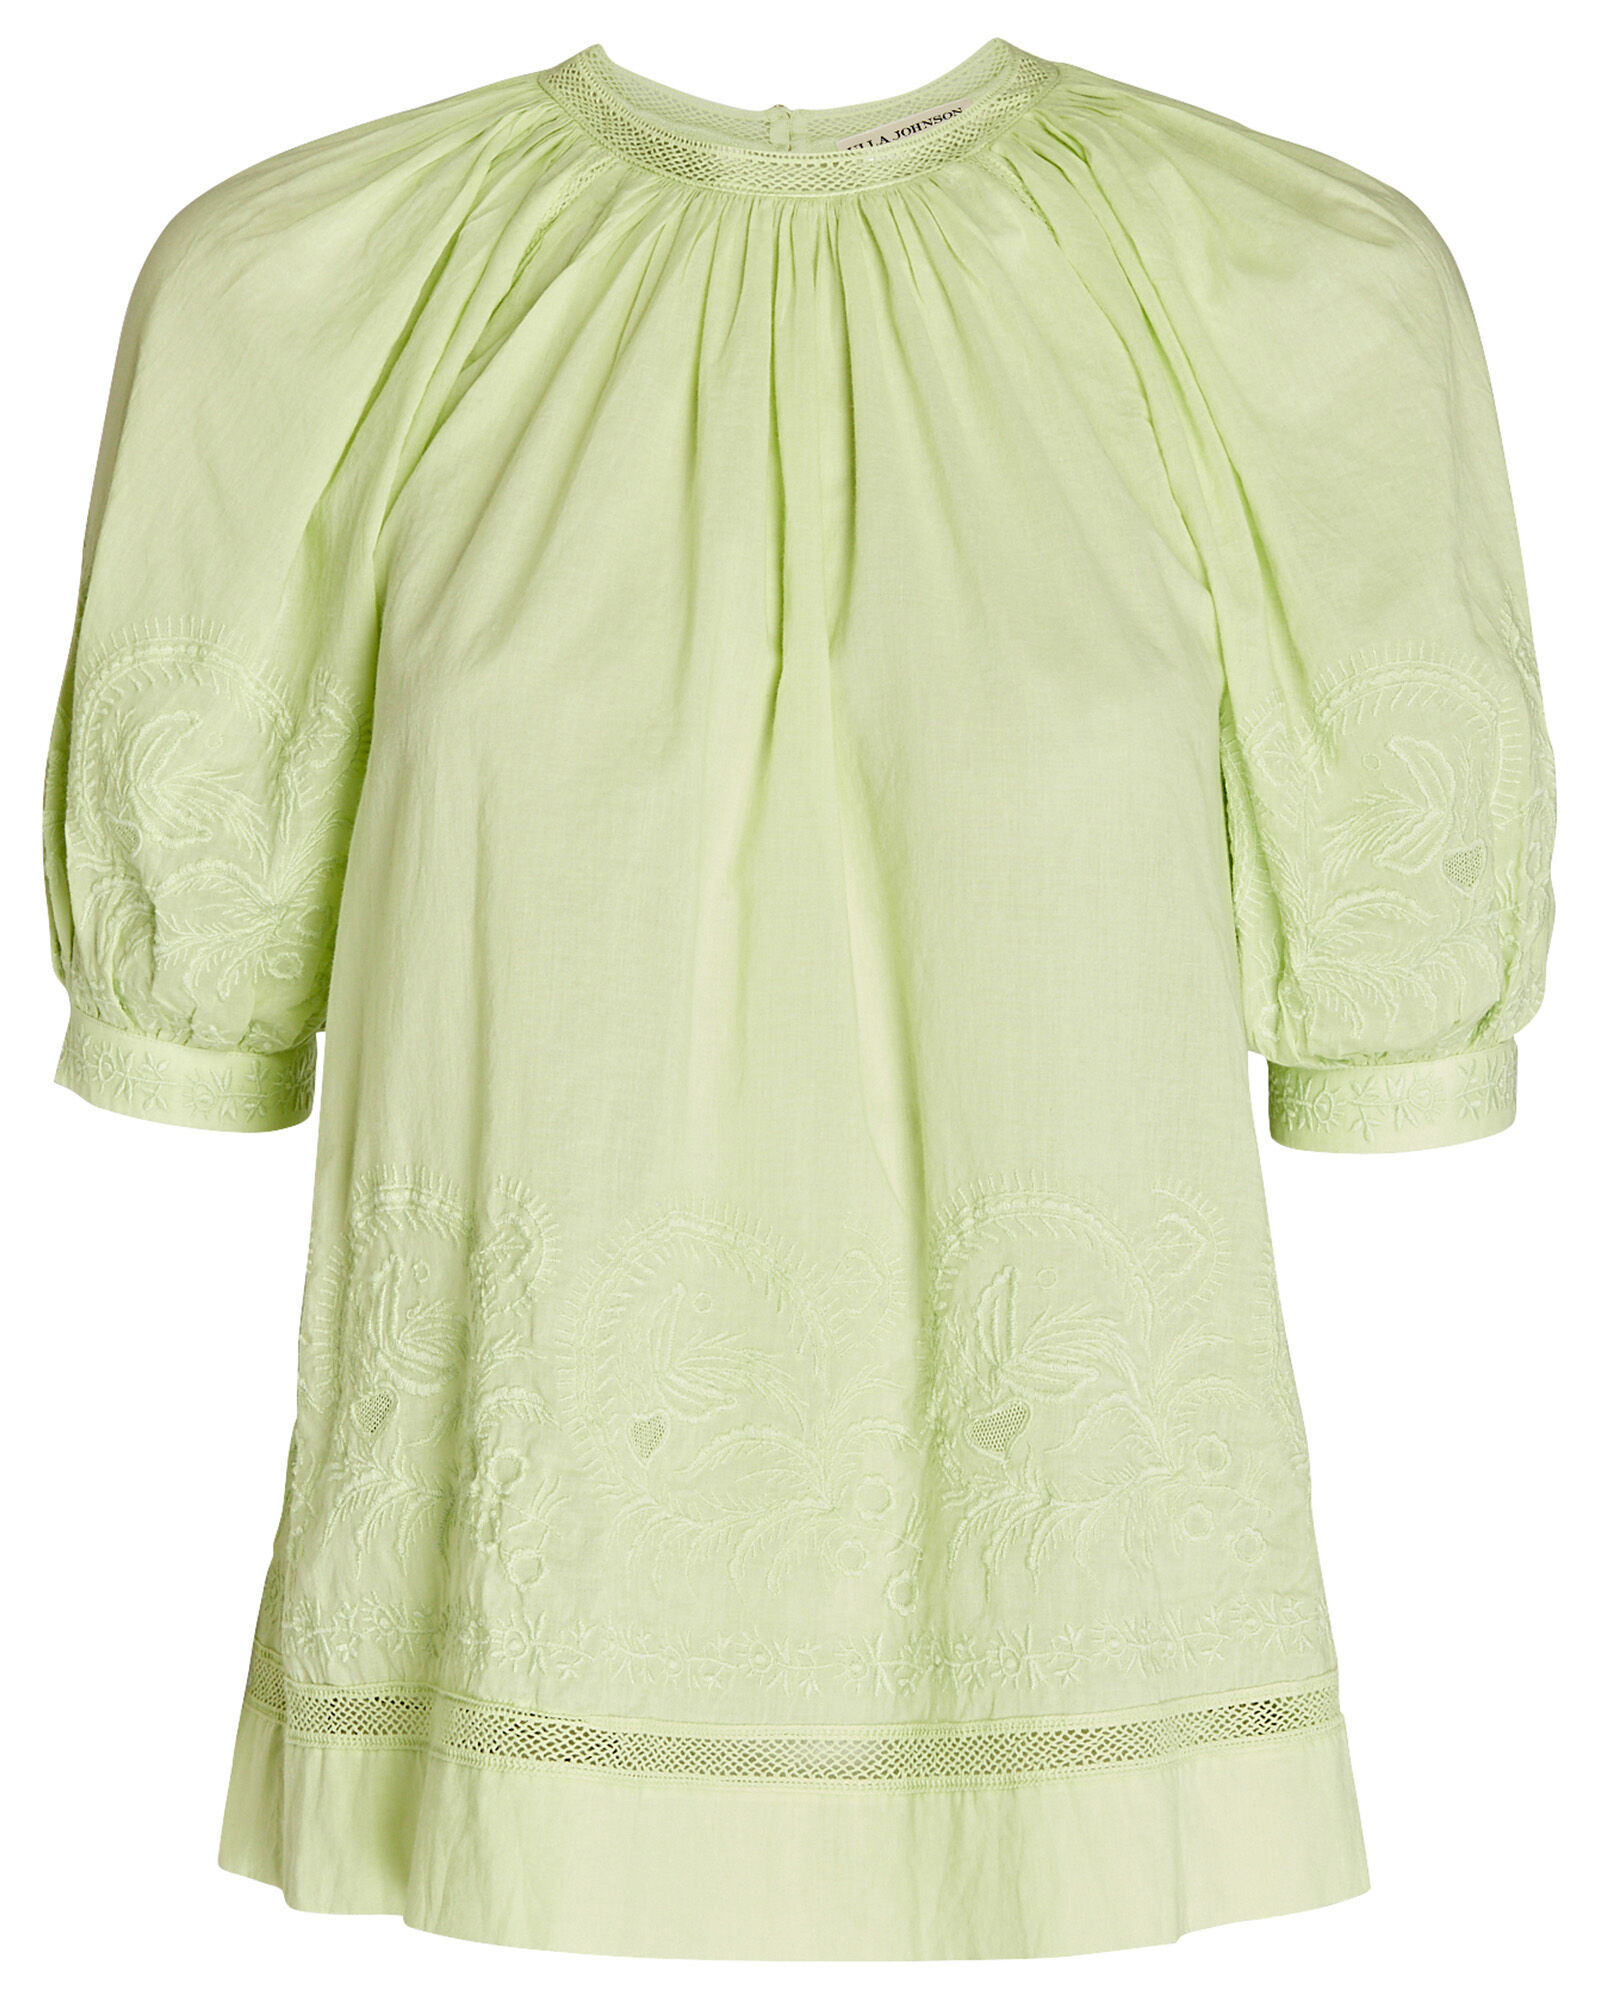 Blythe Embroidered Cotton Top, GREEN-LT, hi-res